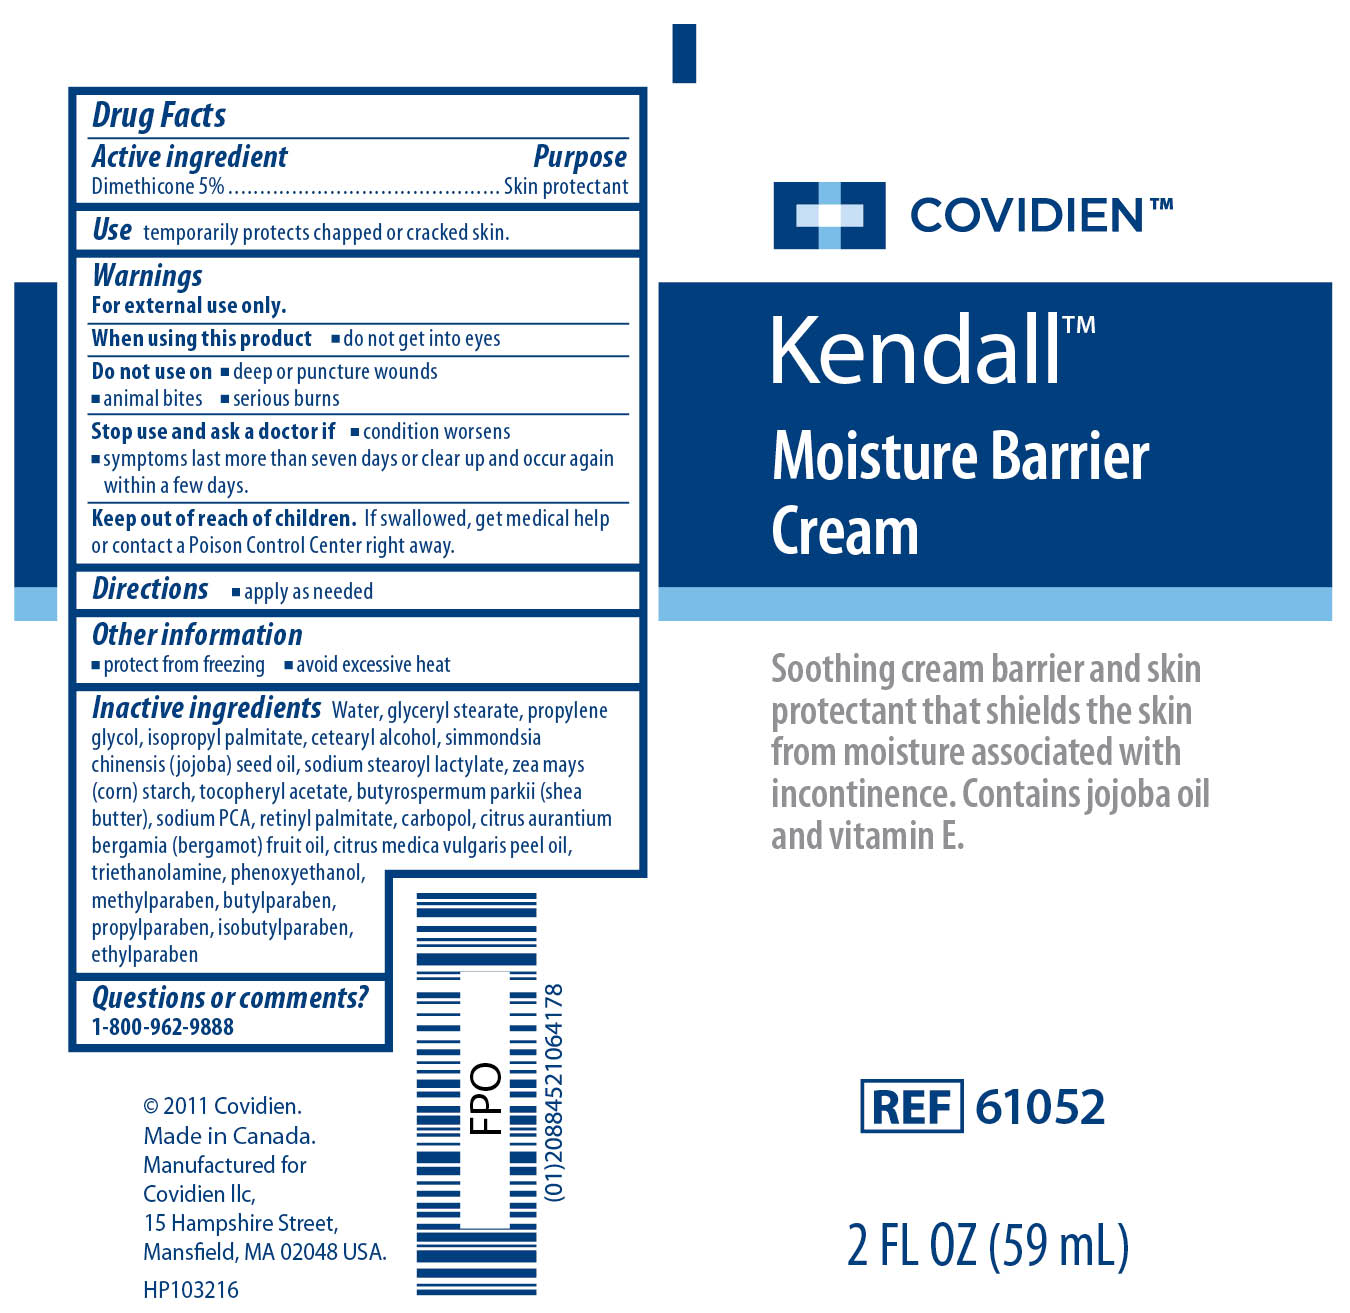 Image of Kendall Moisture Barrier Cream 2 Fl oz Label